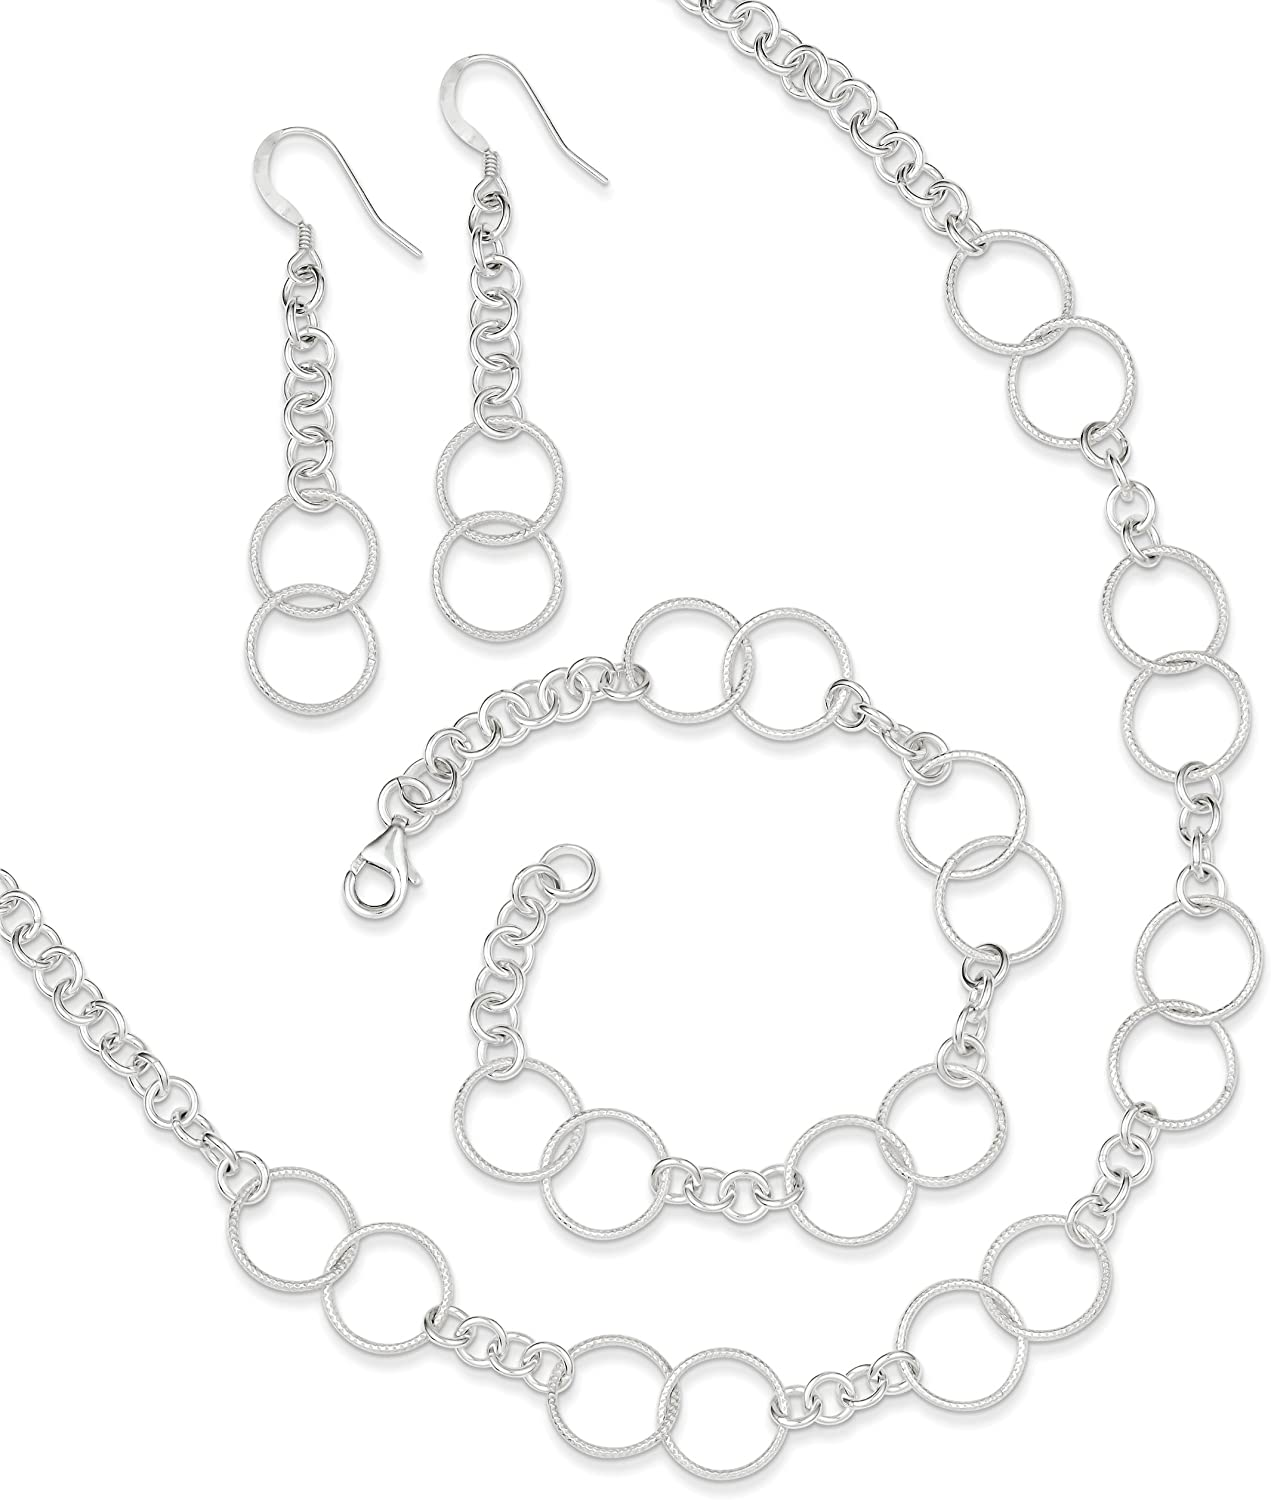 West Coast Jewelry Sterling Silver Necklace Bracelet and Earrings Set